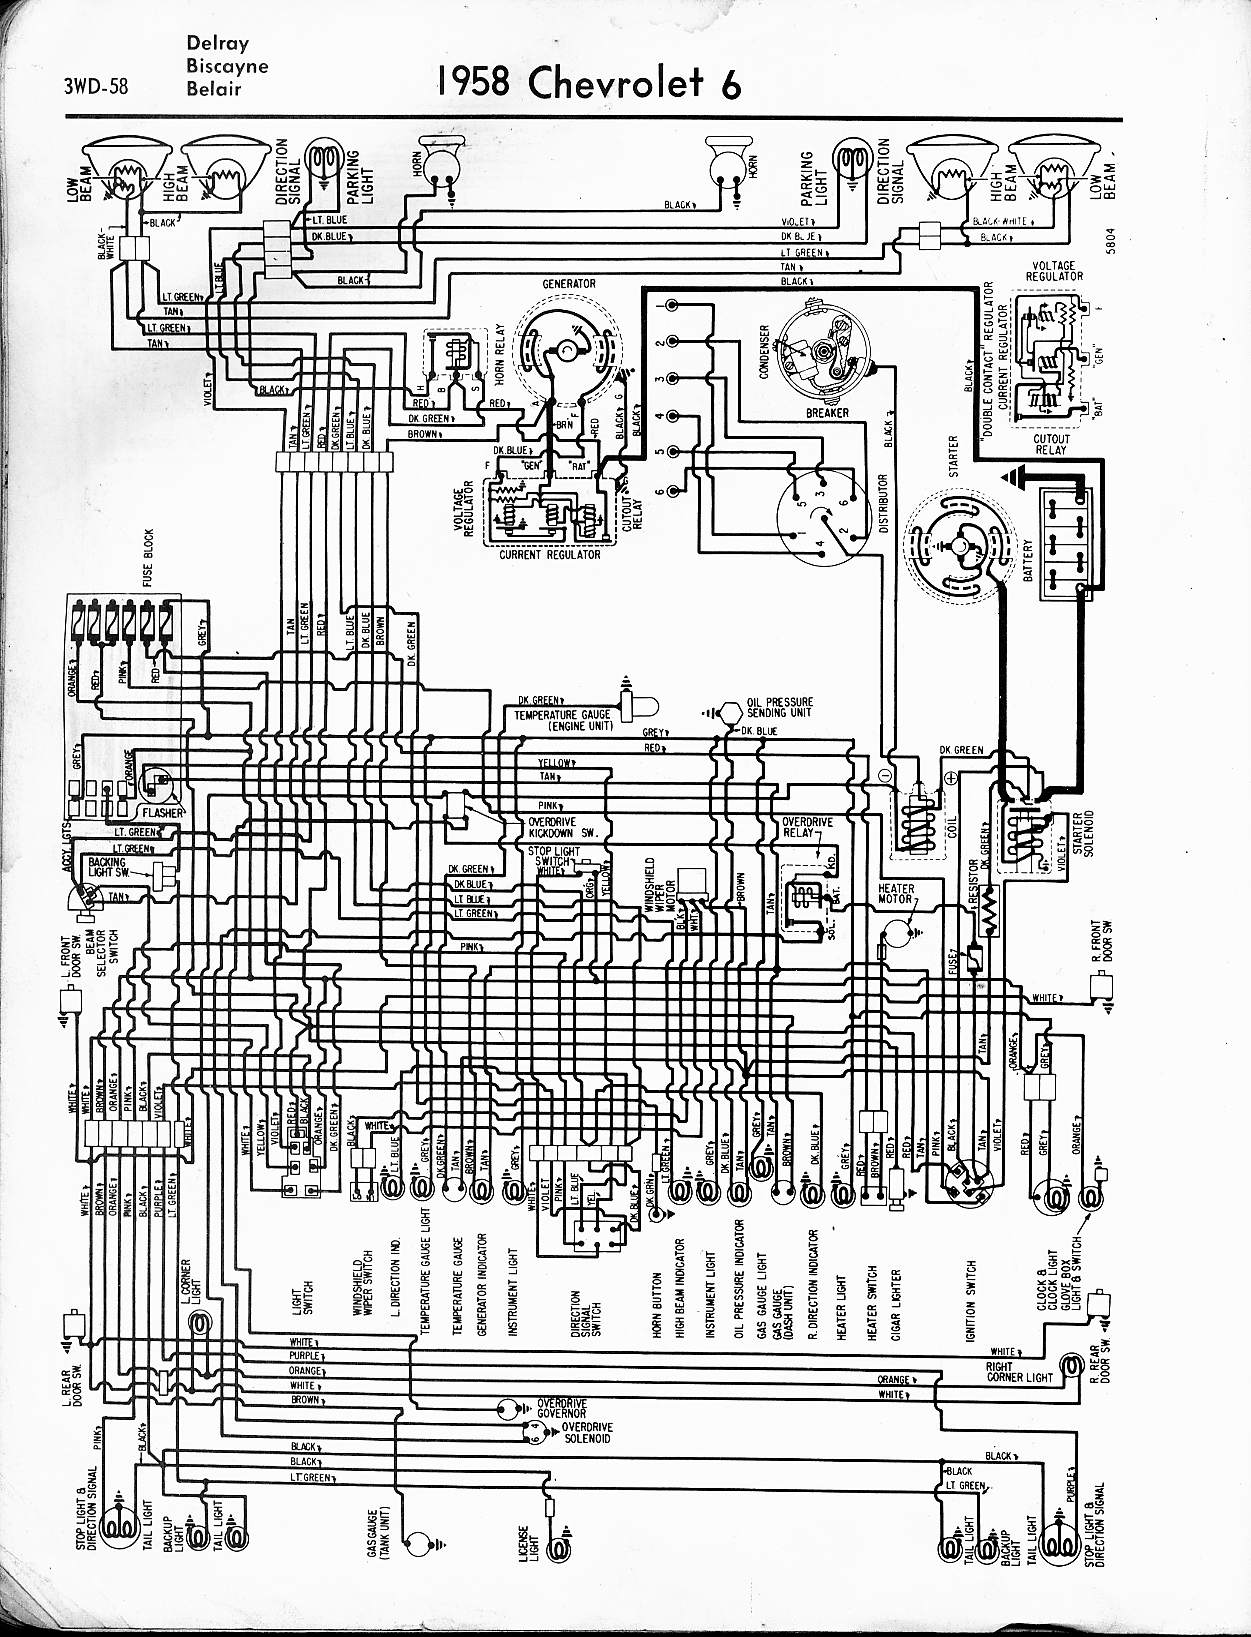 1959 chevy apache wiring diagram 1959 image wiring 57 65 chevy wiring diagrams on 1959 chevy apache wiring diagram